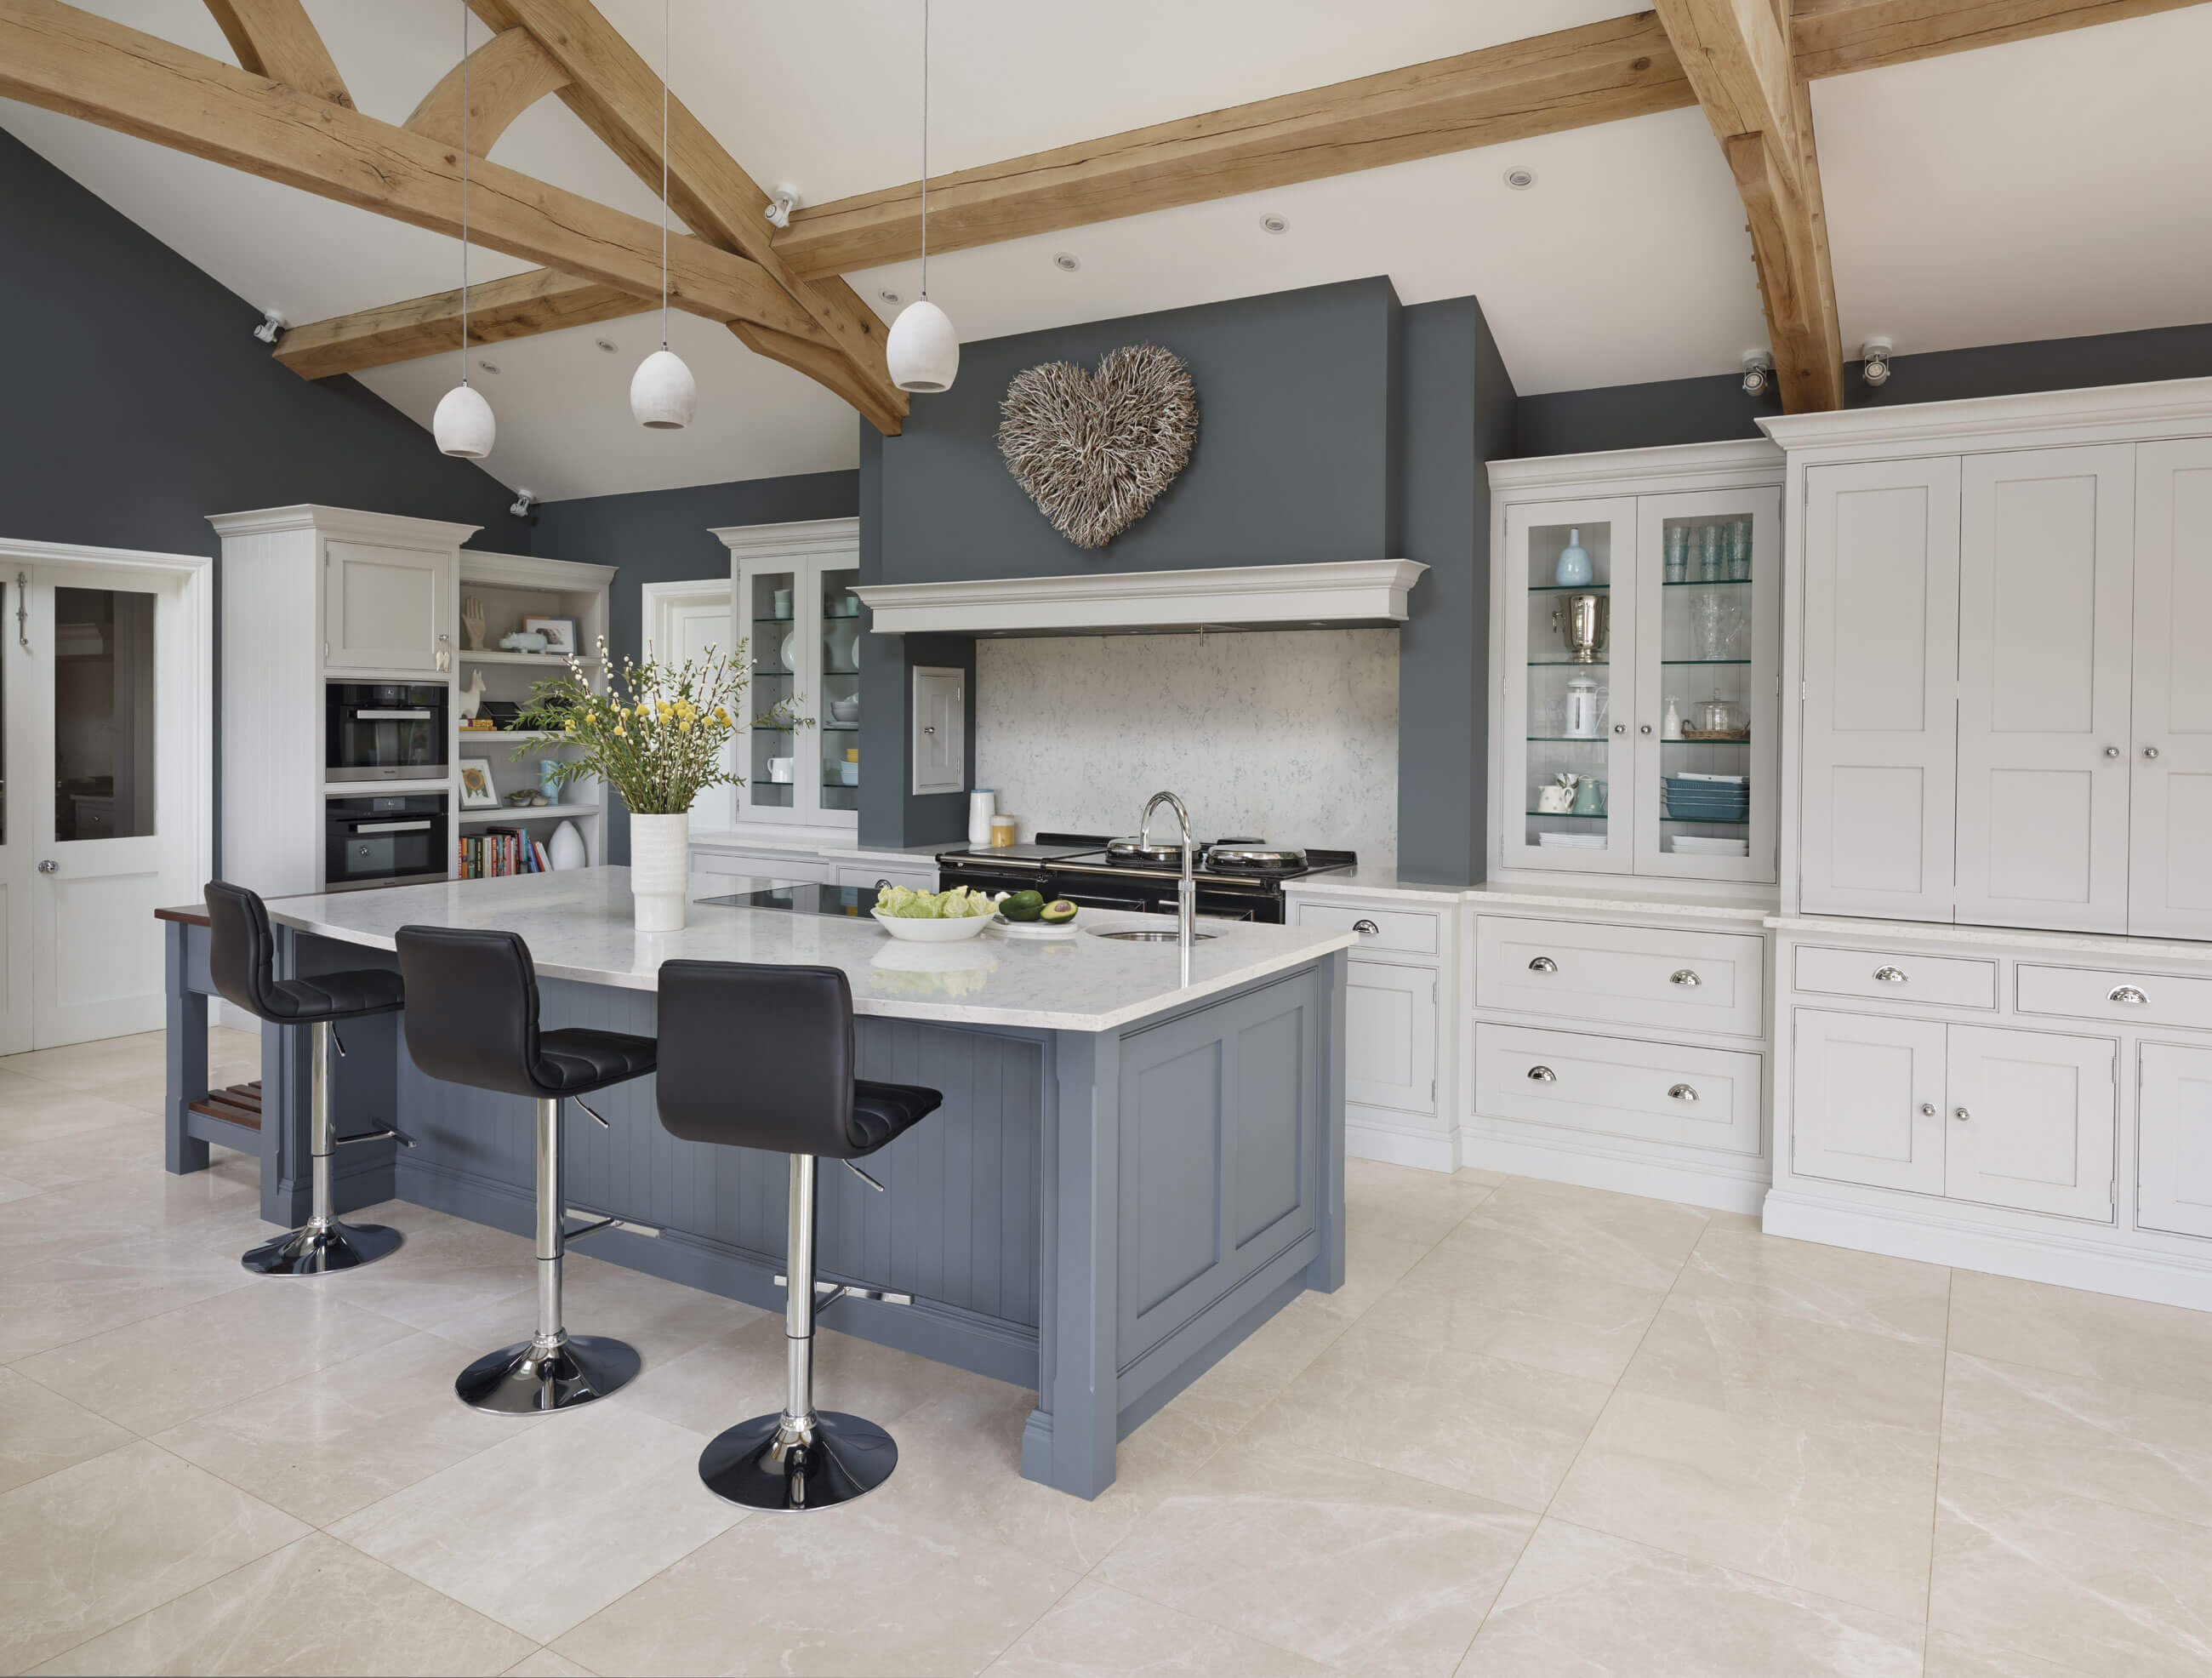 Most admired is our stunning grey family kitchen. This spacious kitchen design is all about being able to cook entertain and spend time together as a ... & Monthly Inspiration - Our Top Pinned Images | Tom Howley